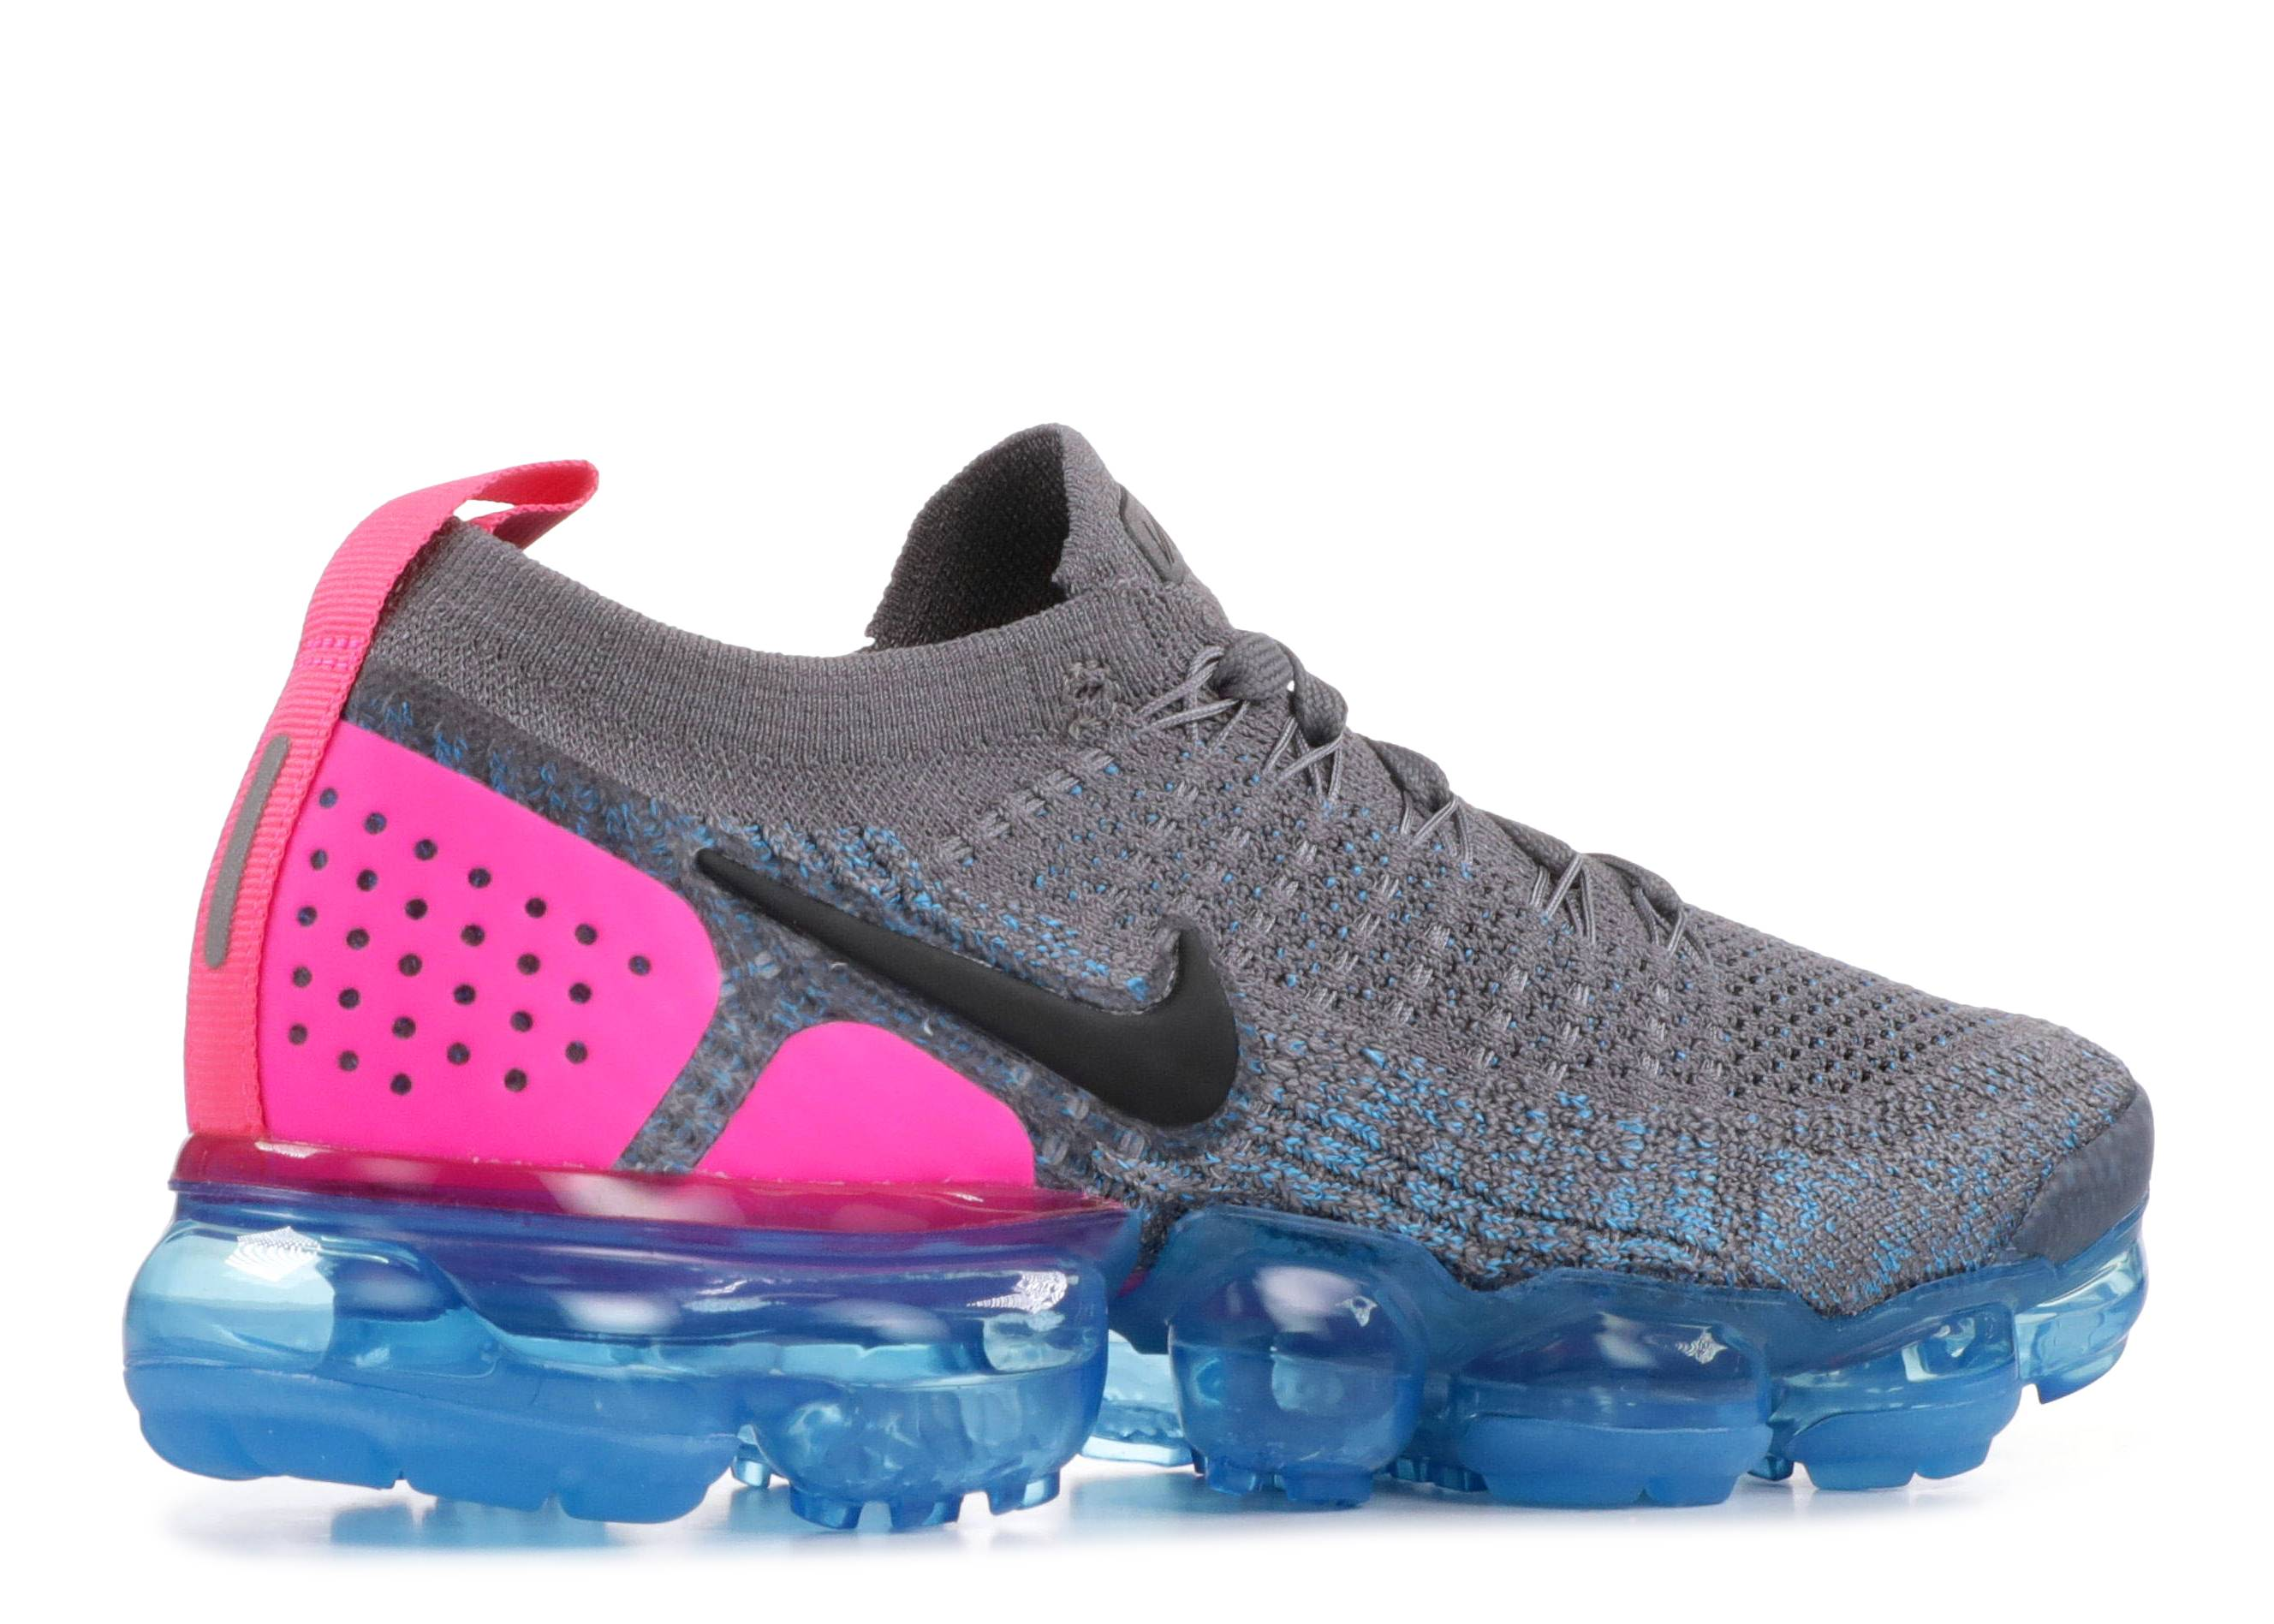 57fb52badf4a W Nike Air Vapormax Flyknit 2 - Nike - 942843 004 - gunsmoke black-blue  orbit